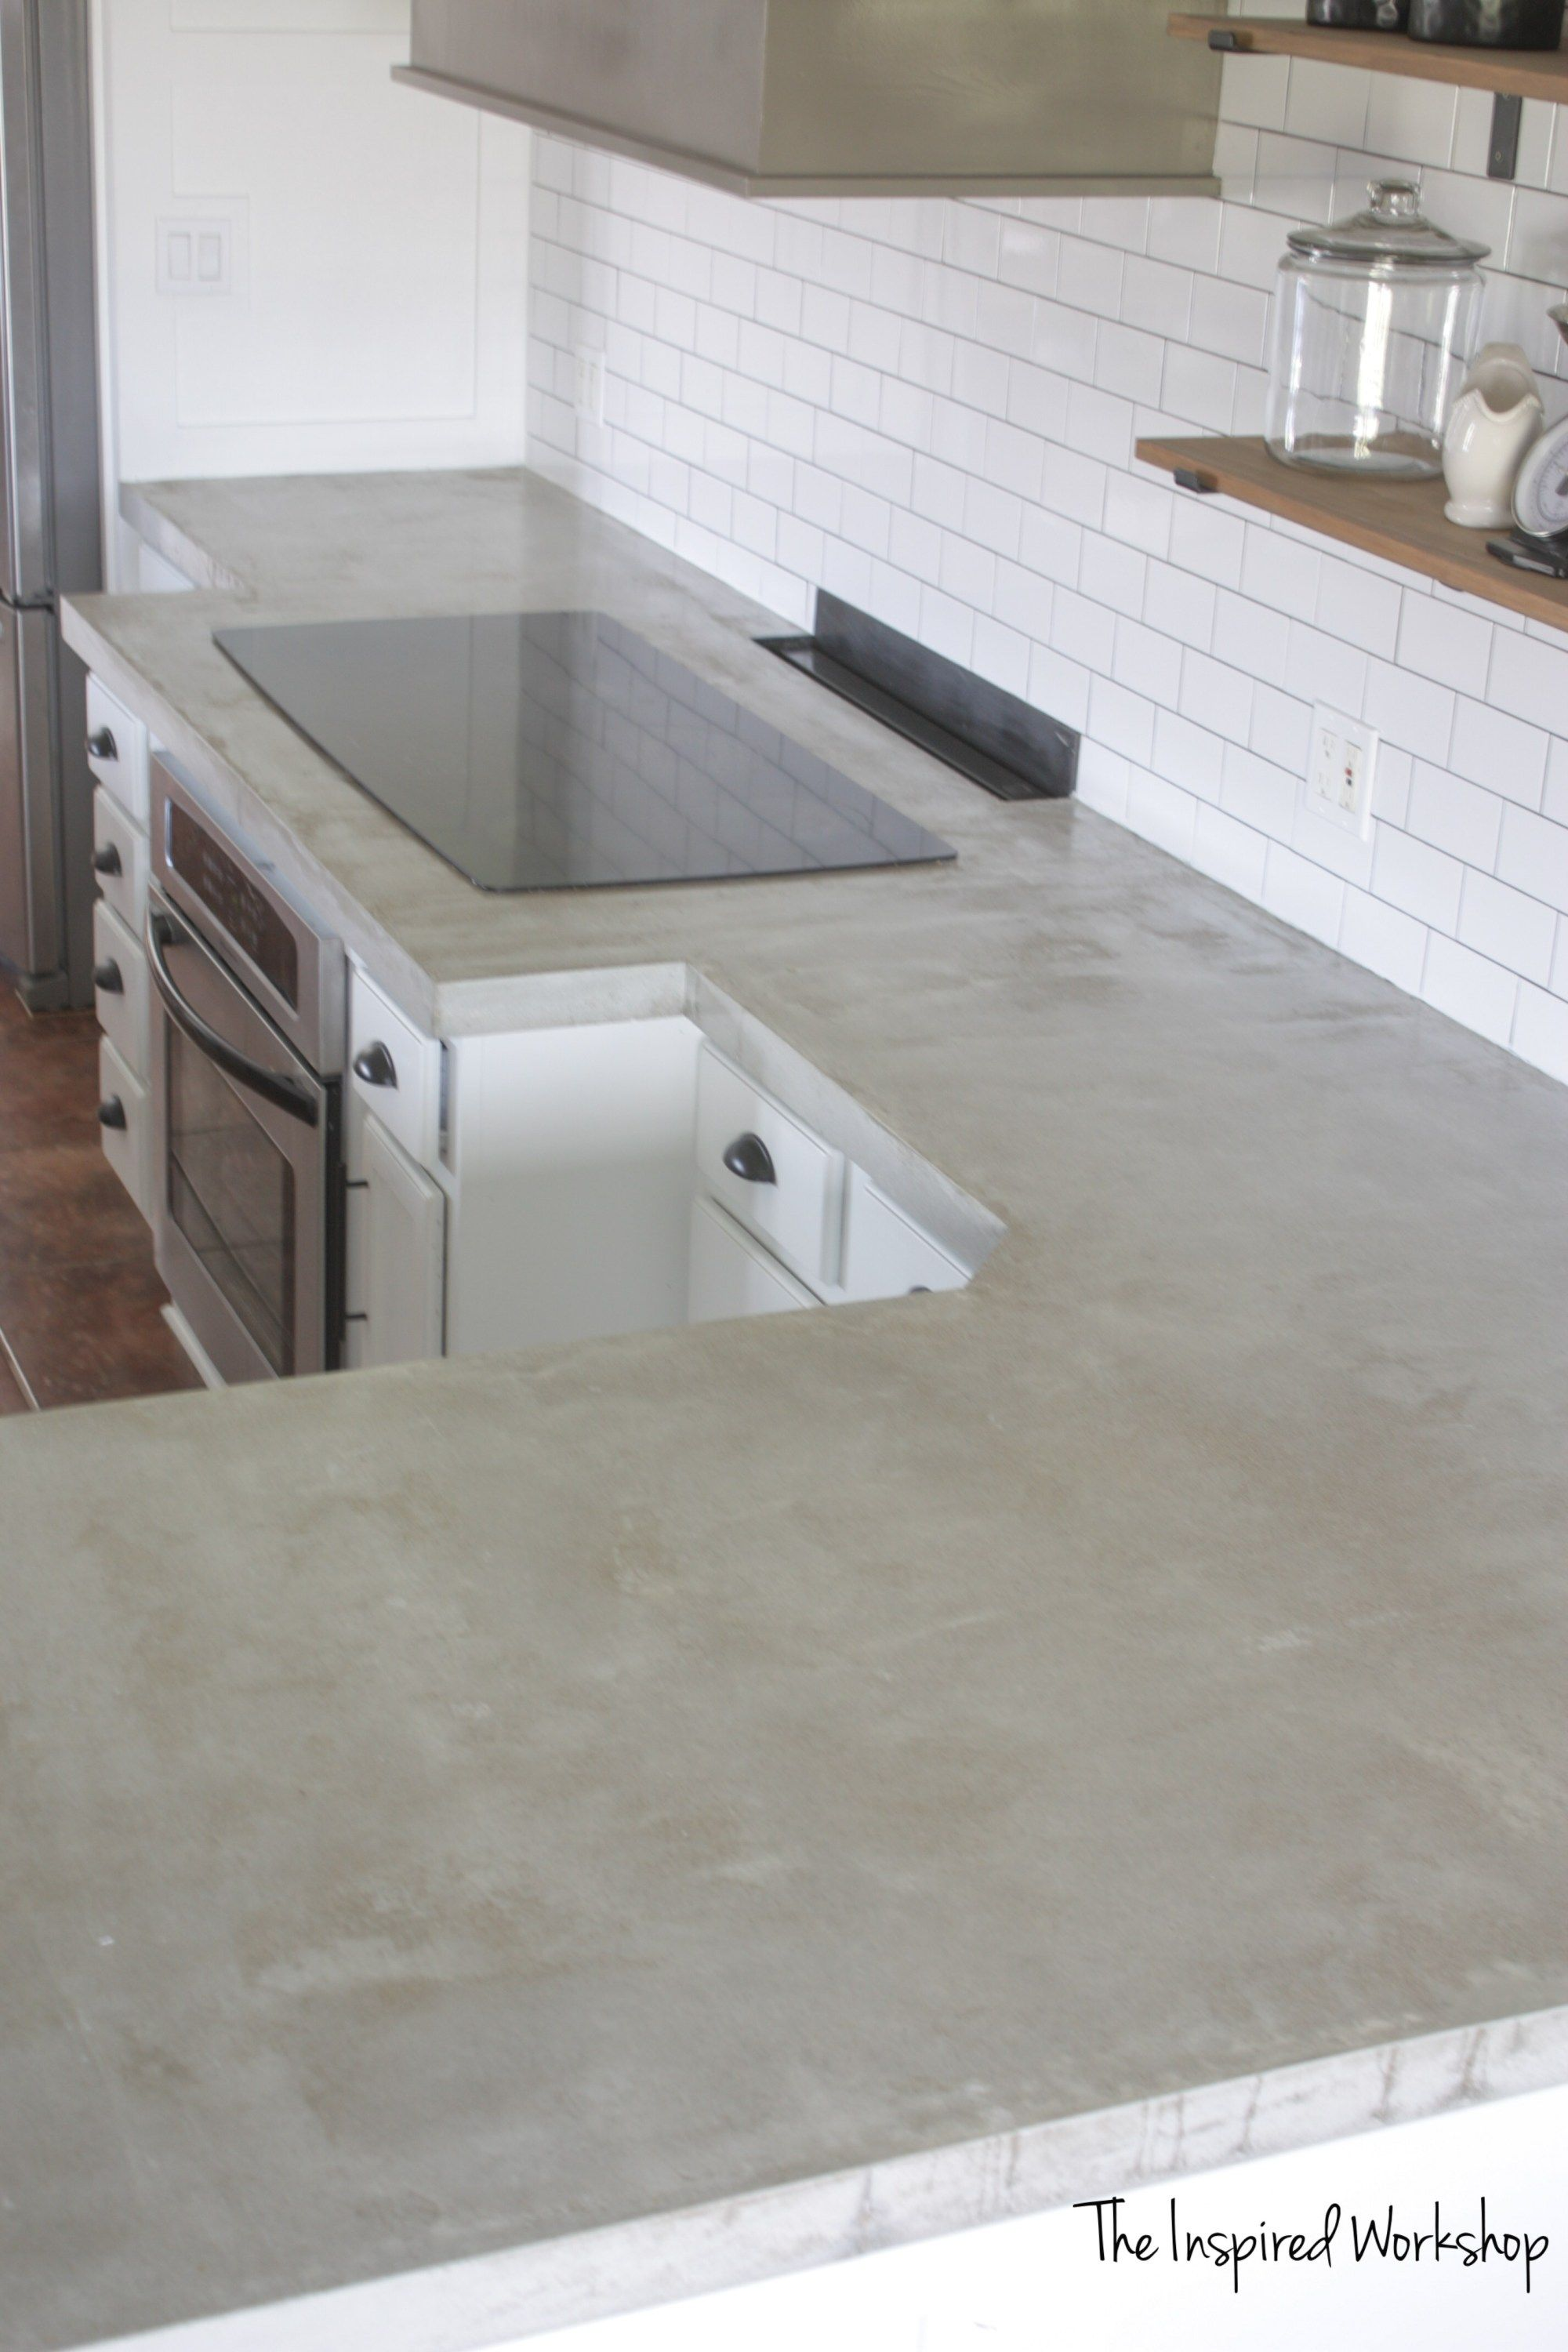 Diy Concrete Countertops Pour In Place Concrete Countertops Kitchen White Concrete Countertops Diy Concrete Countertops